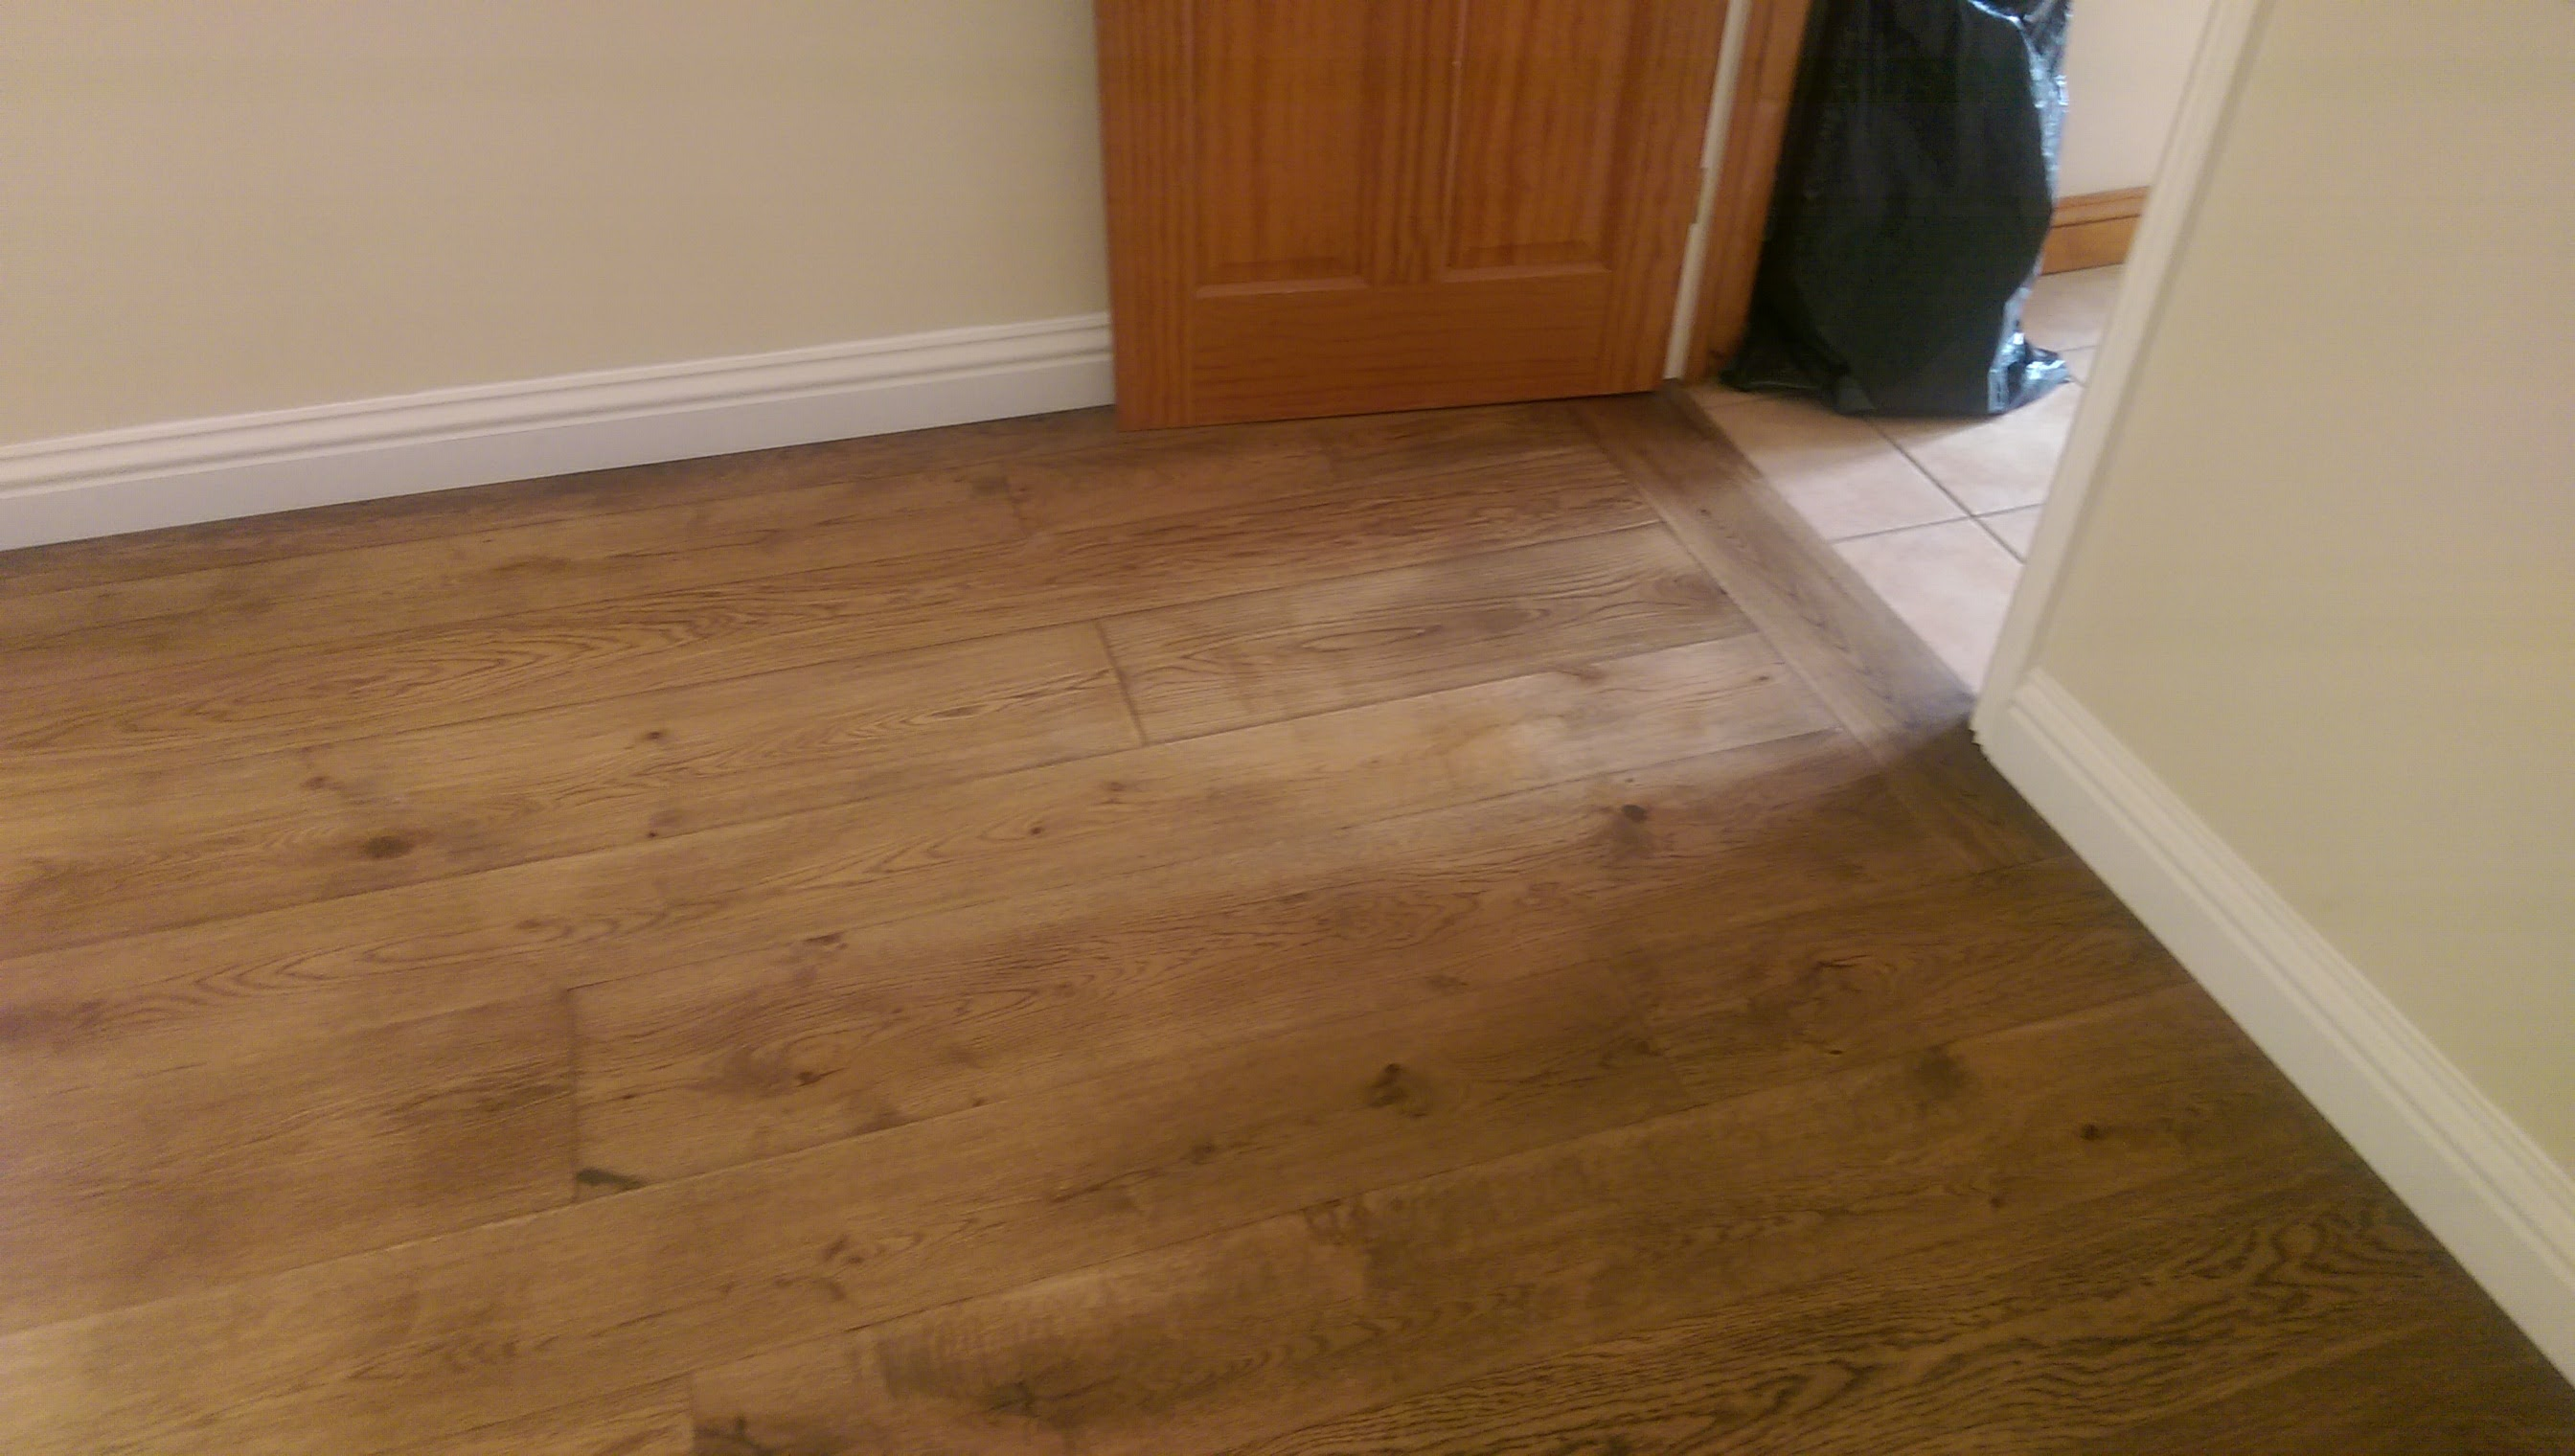 JJP Wood Flooring Company Installations Portfolio - Who installs hardwood floors